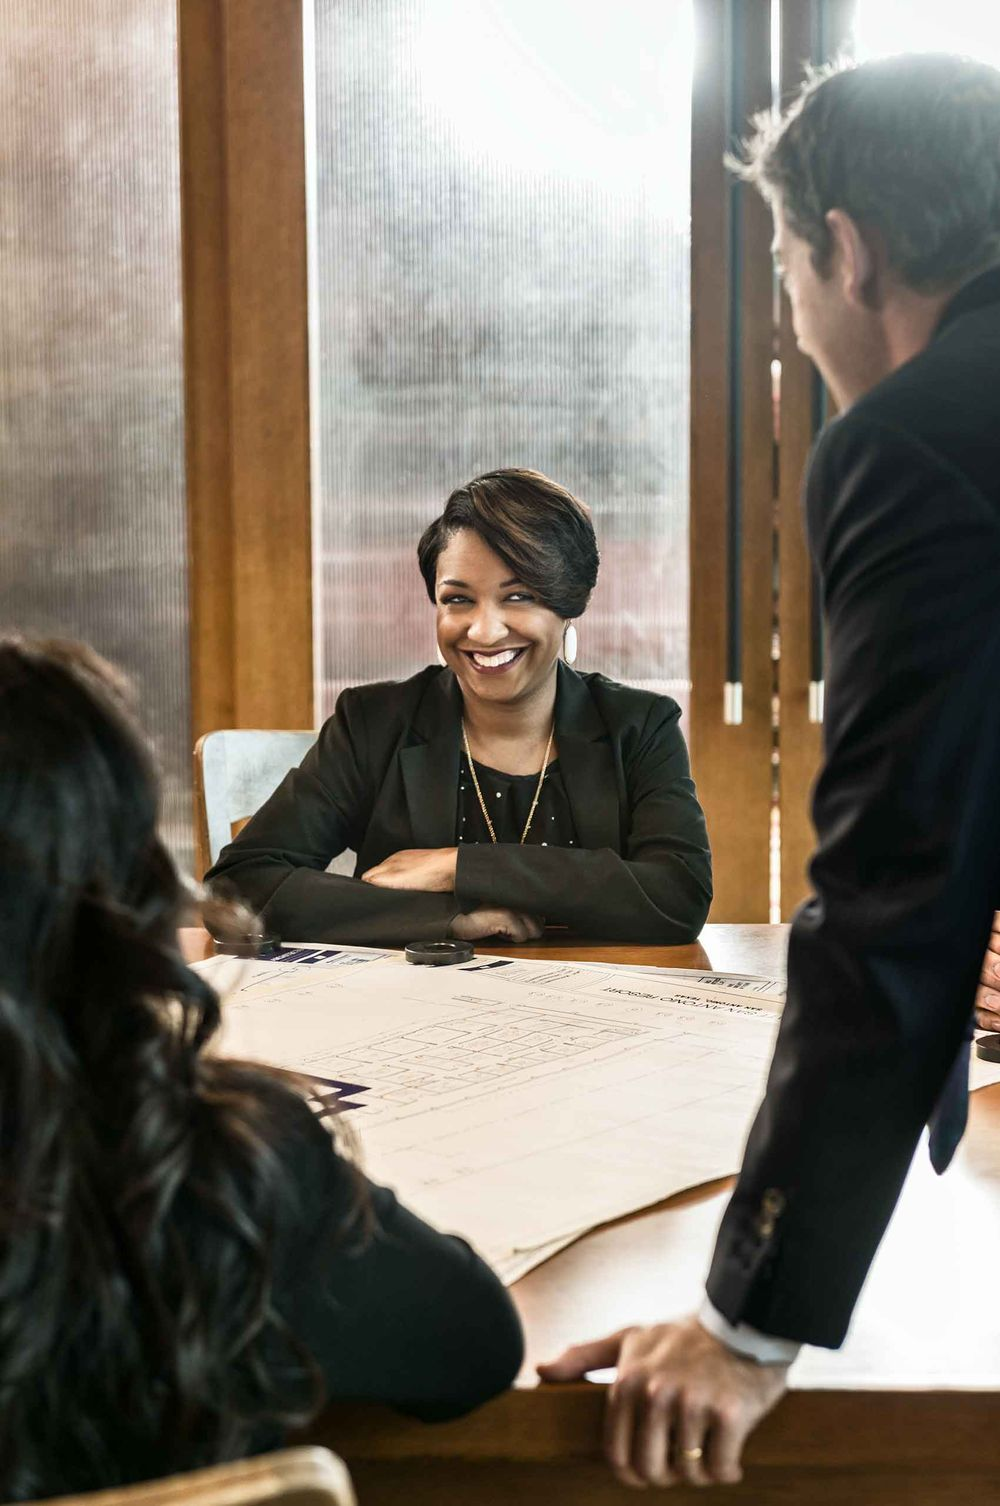 Smiling-woman-in-Businessmeeting-by-HenrikOlundPhotography.jpg